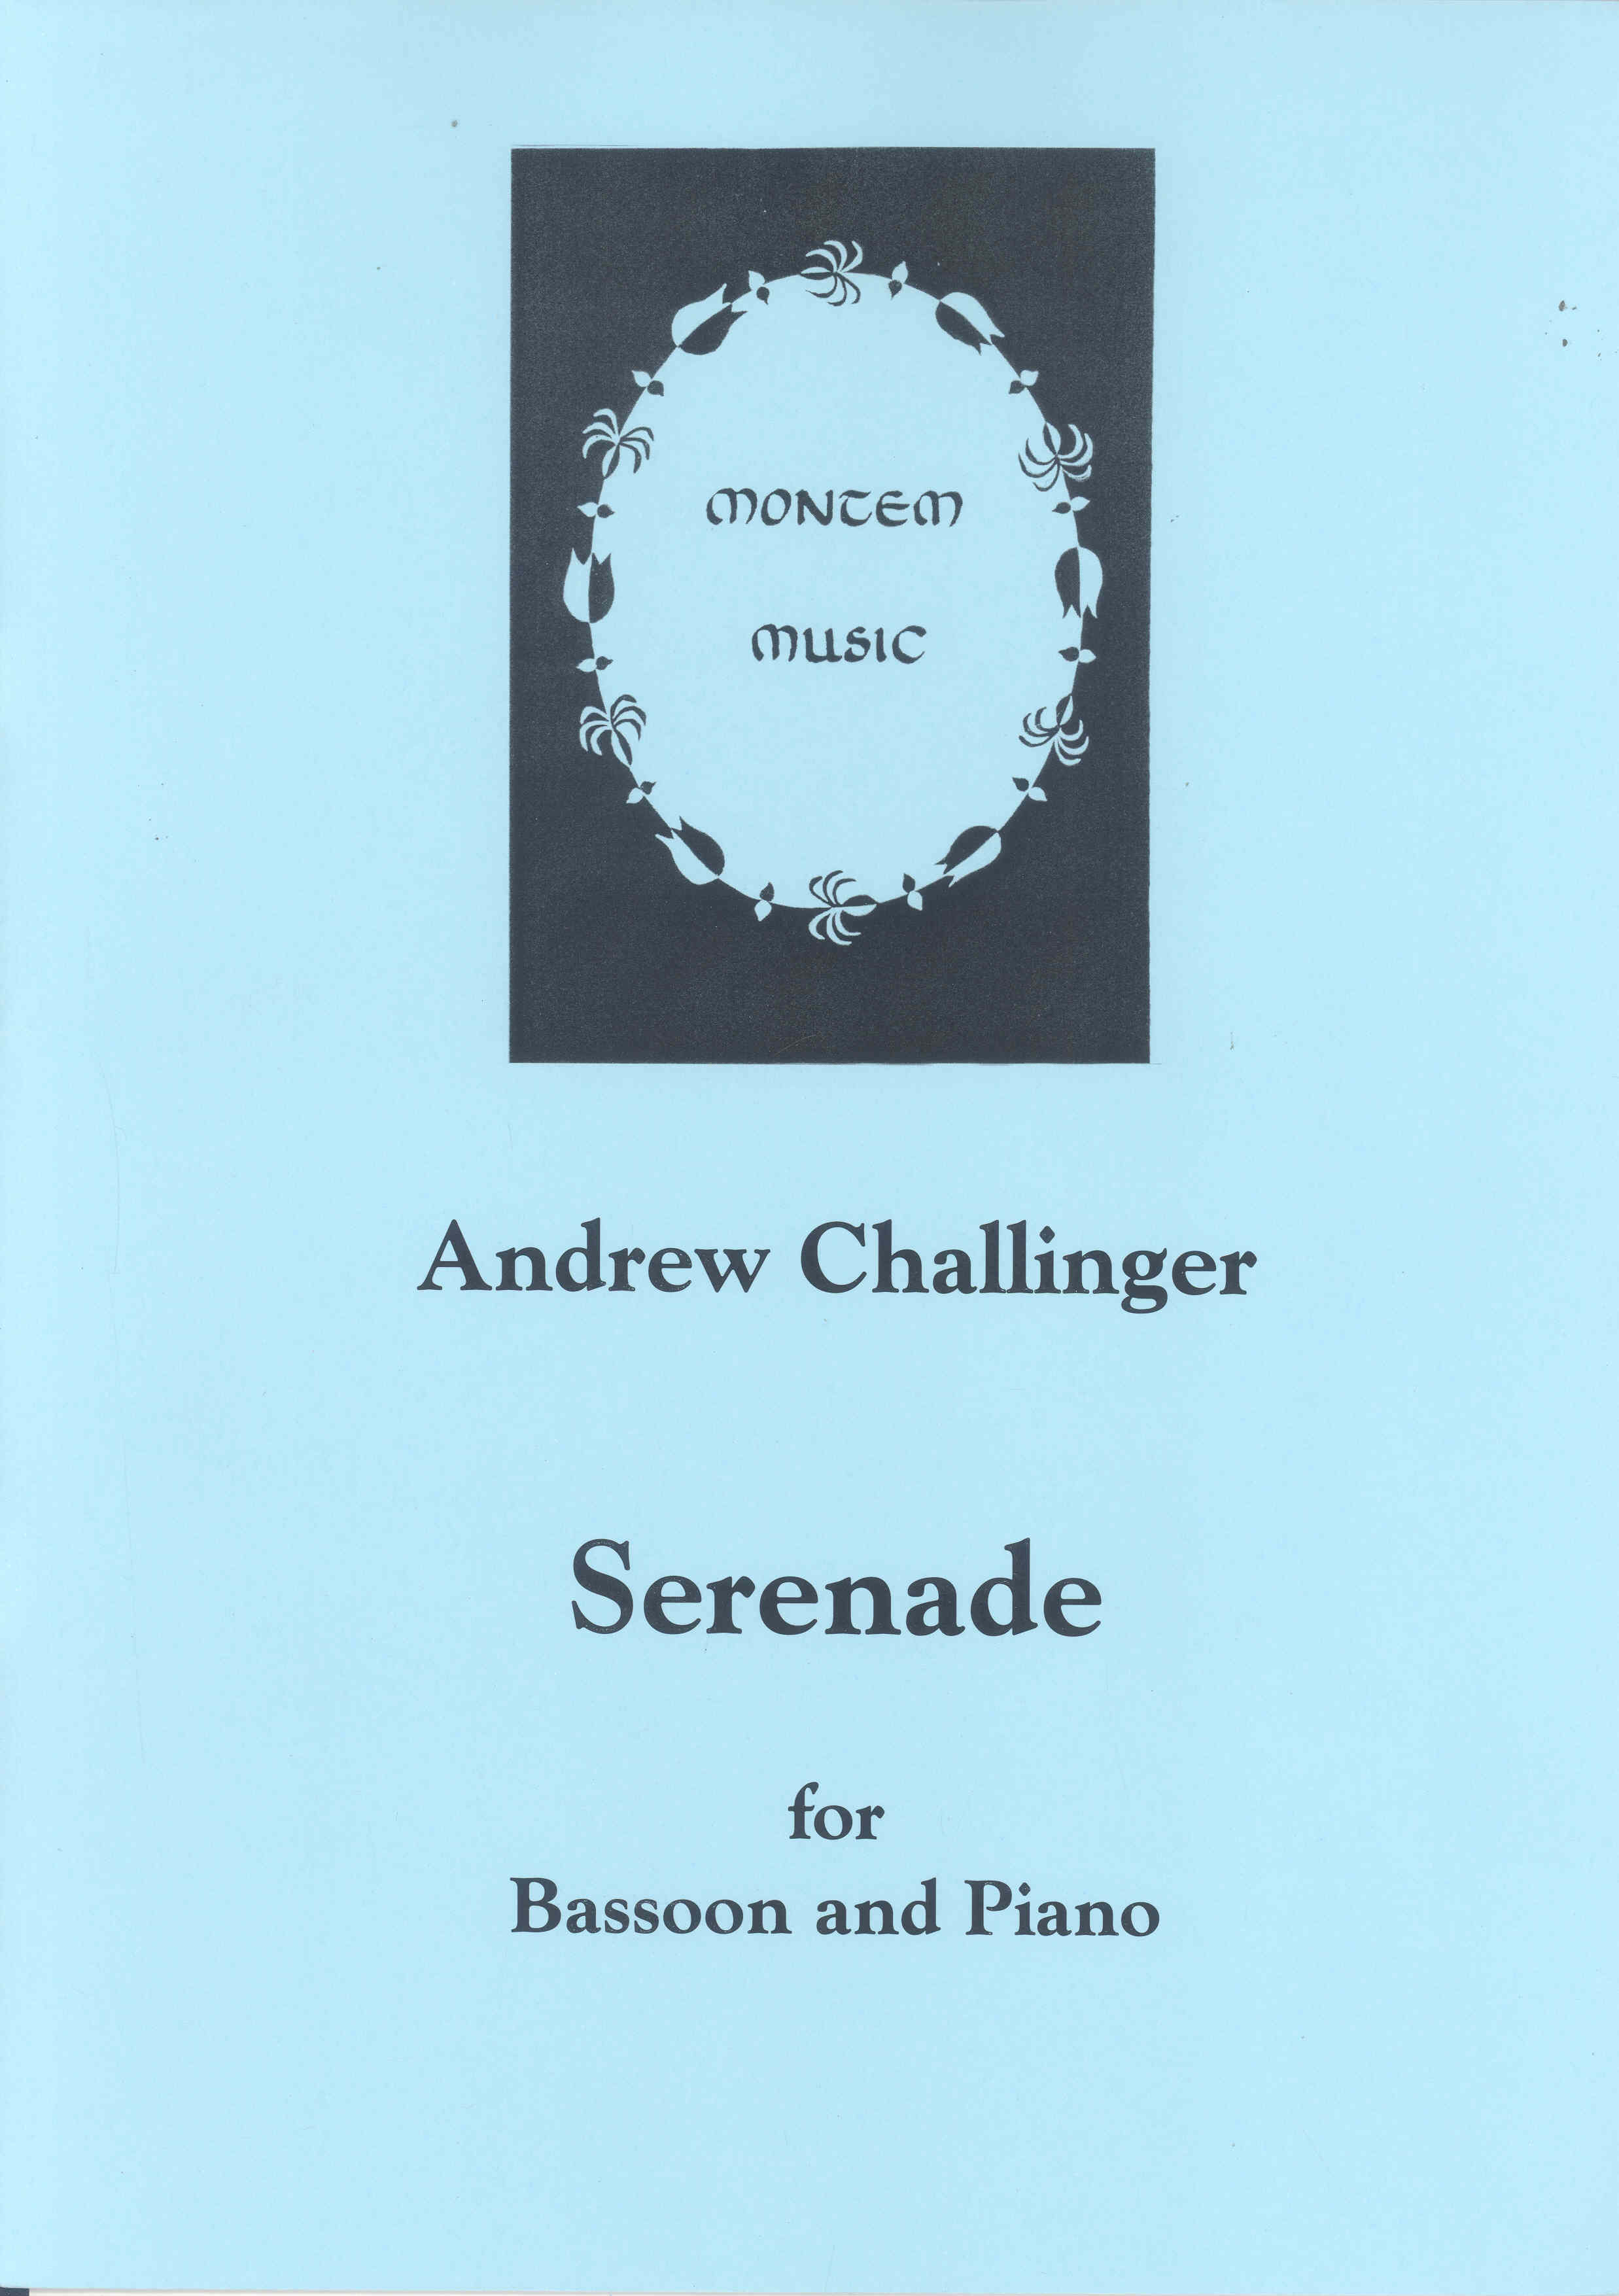 Challinger: Serenade for Bassoon published by Montem